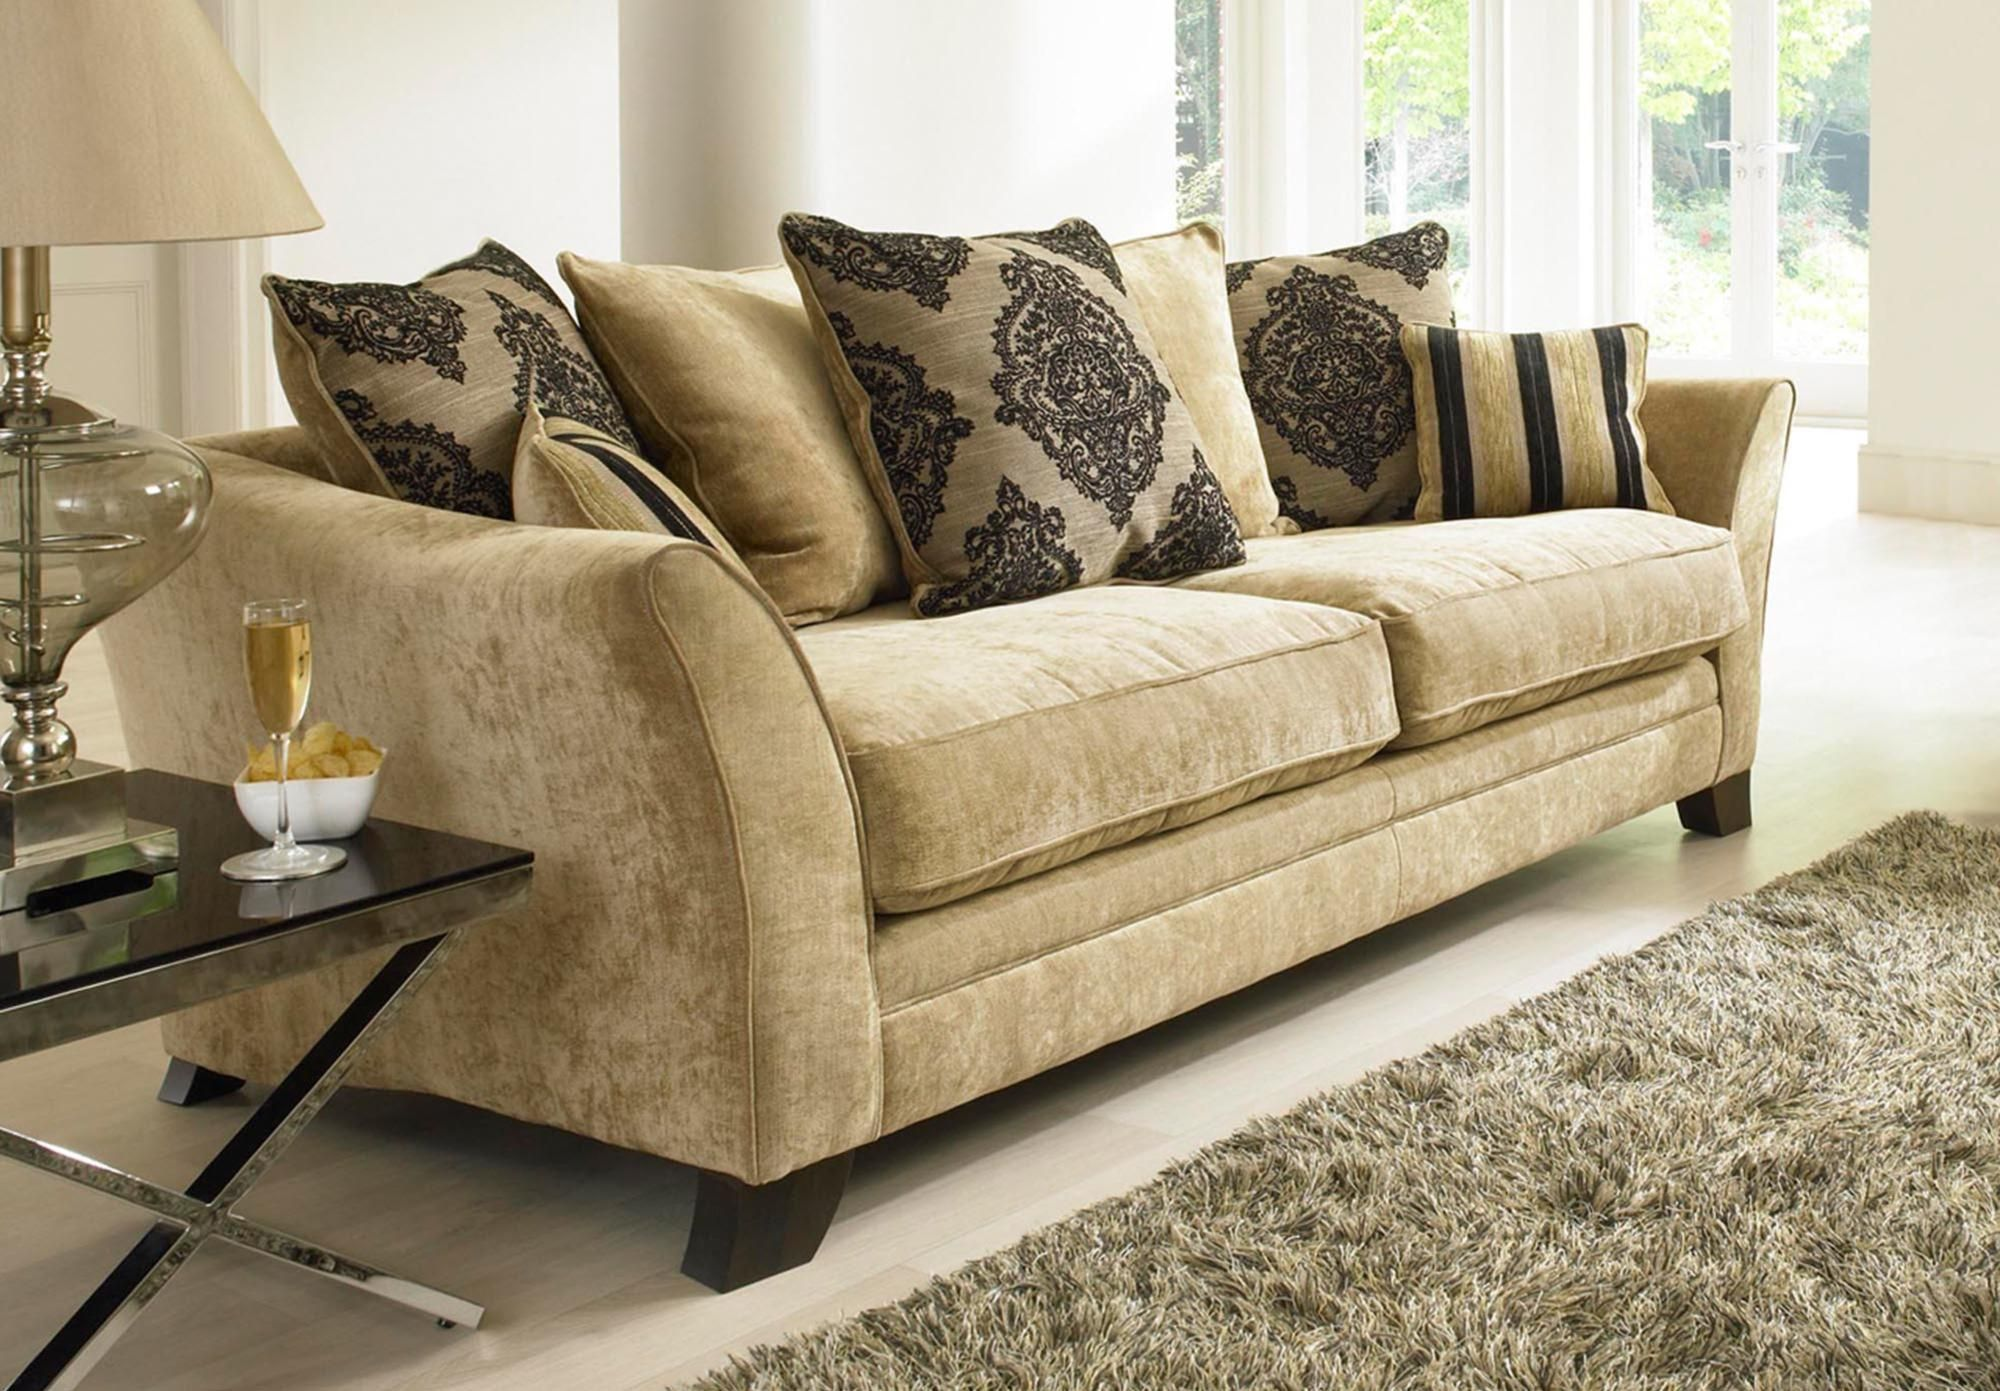 Fable Corner Sofa Furniture Village How To Make Sectional From Pallets Leather Sofas